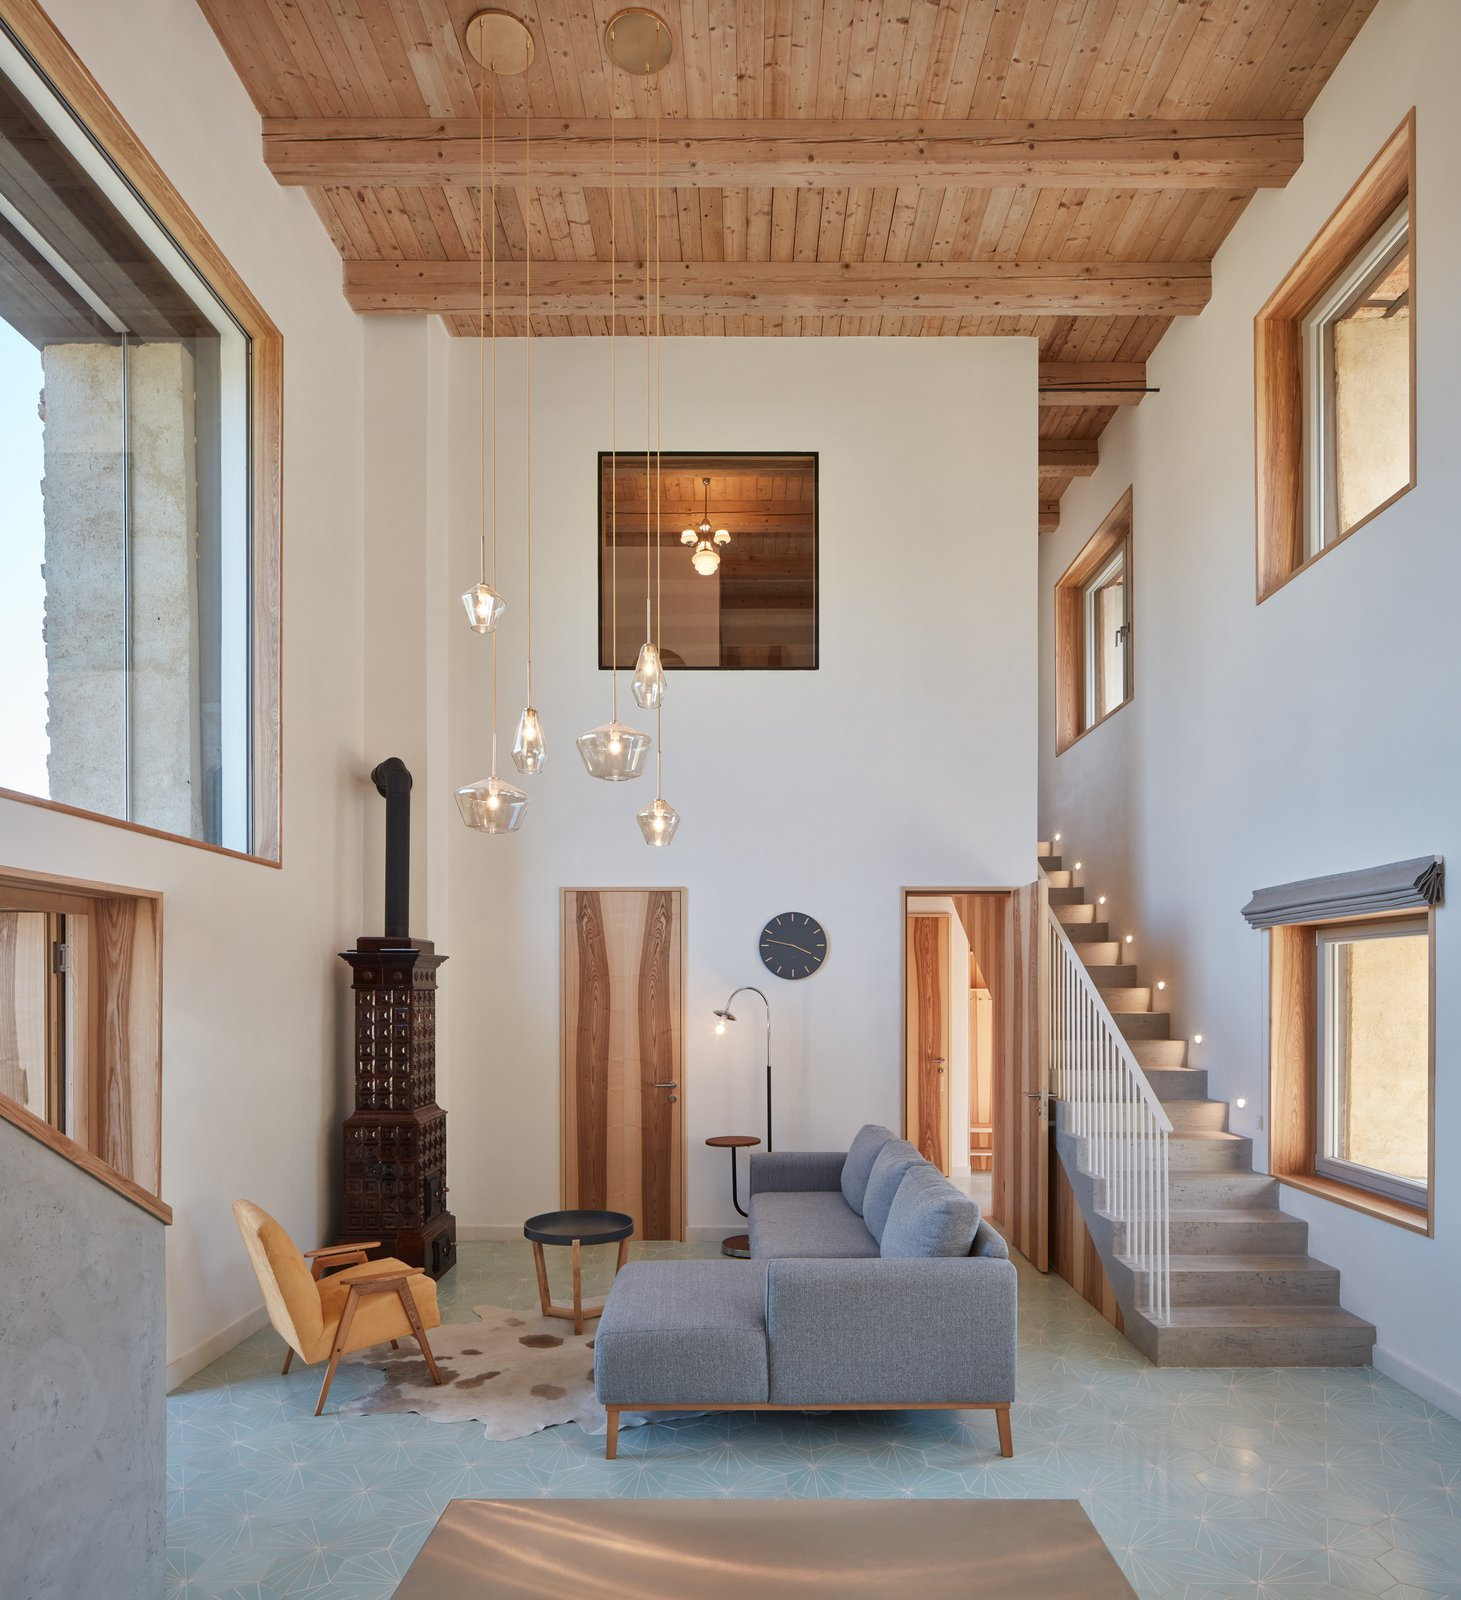 Living, Chair, Hanging, Sofa, End Tables, Coffee Tables, Rug, Ceiling, Lamps, and Sectional  Living Sectional Lamps Photos from Romantic Ruins Enclose a Modern House in the Czech Republic